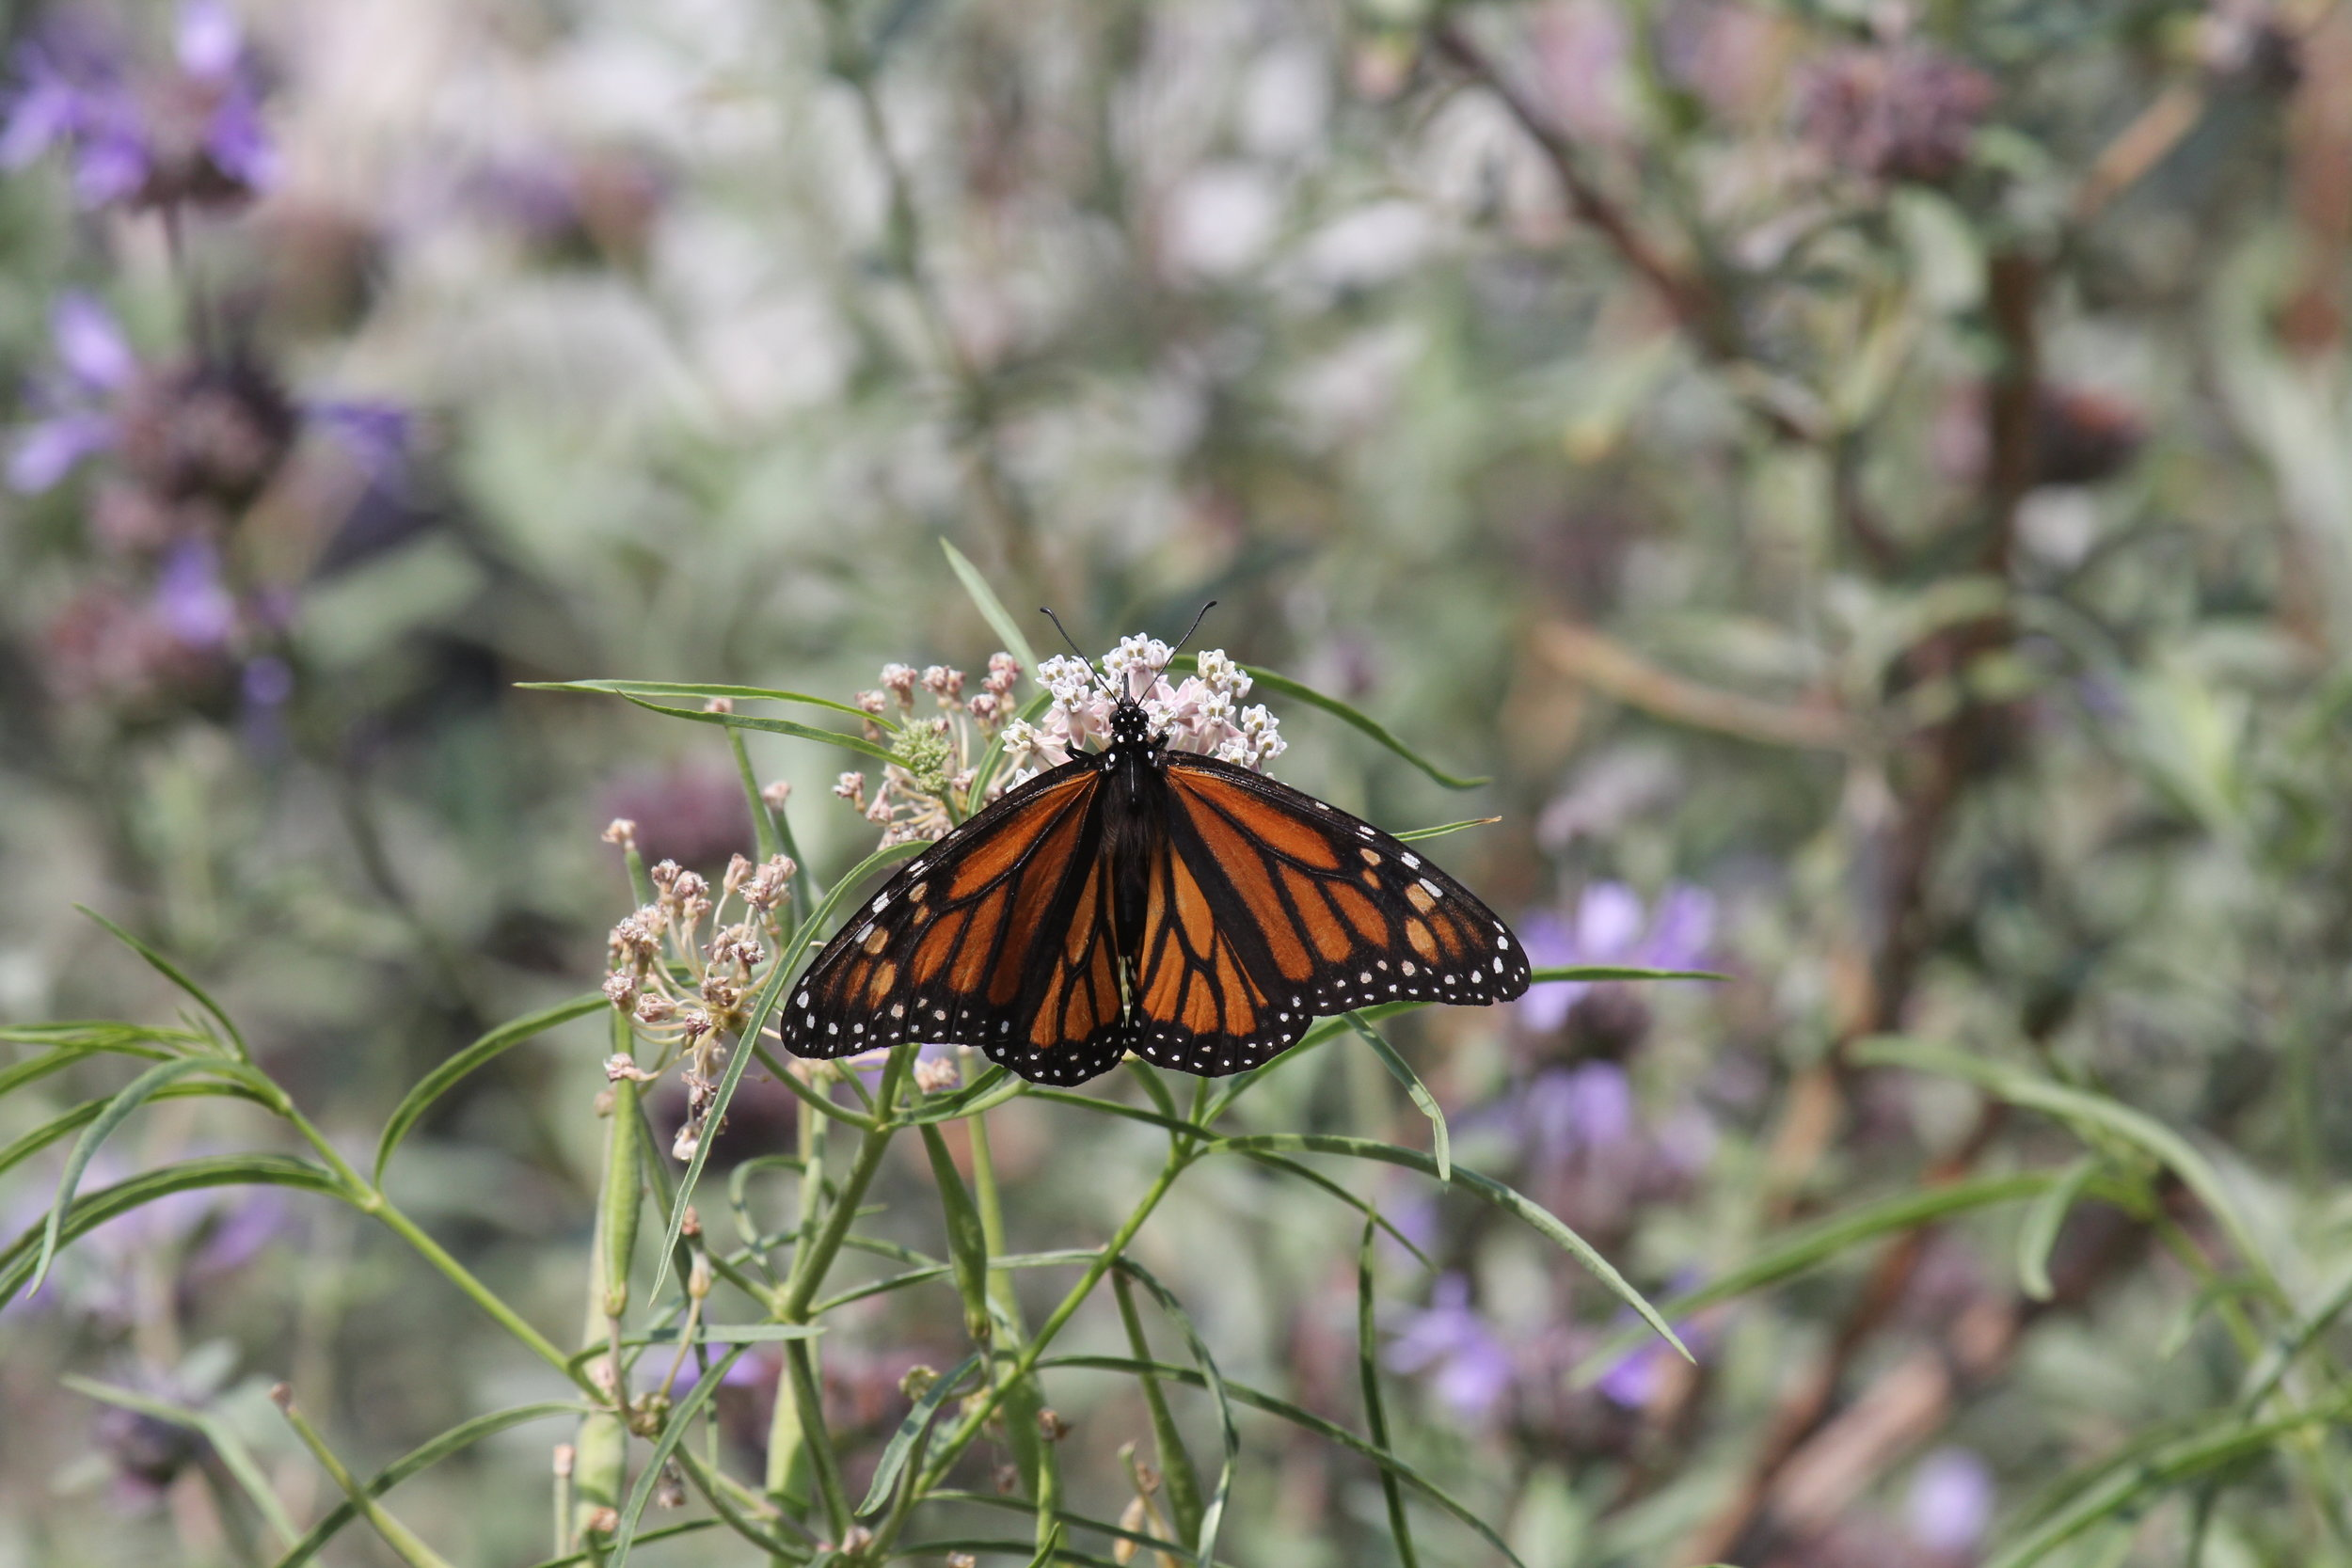 A Monarch Butterfly ( Danaus plexippus ) visiting a Narrow Leaf Milkweed ( Asclepias fascicularis ) in a residential yard in Los Angeles. Noriko's project will shed light on the value of residential yards for urban biodiversity.